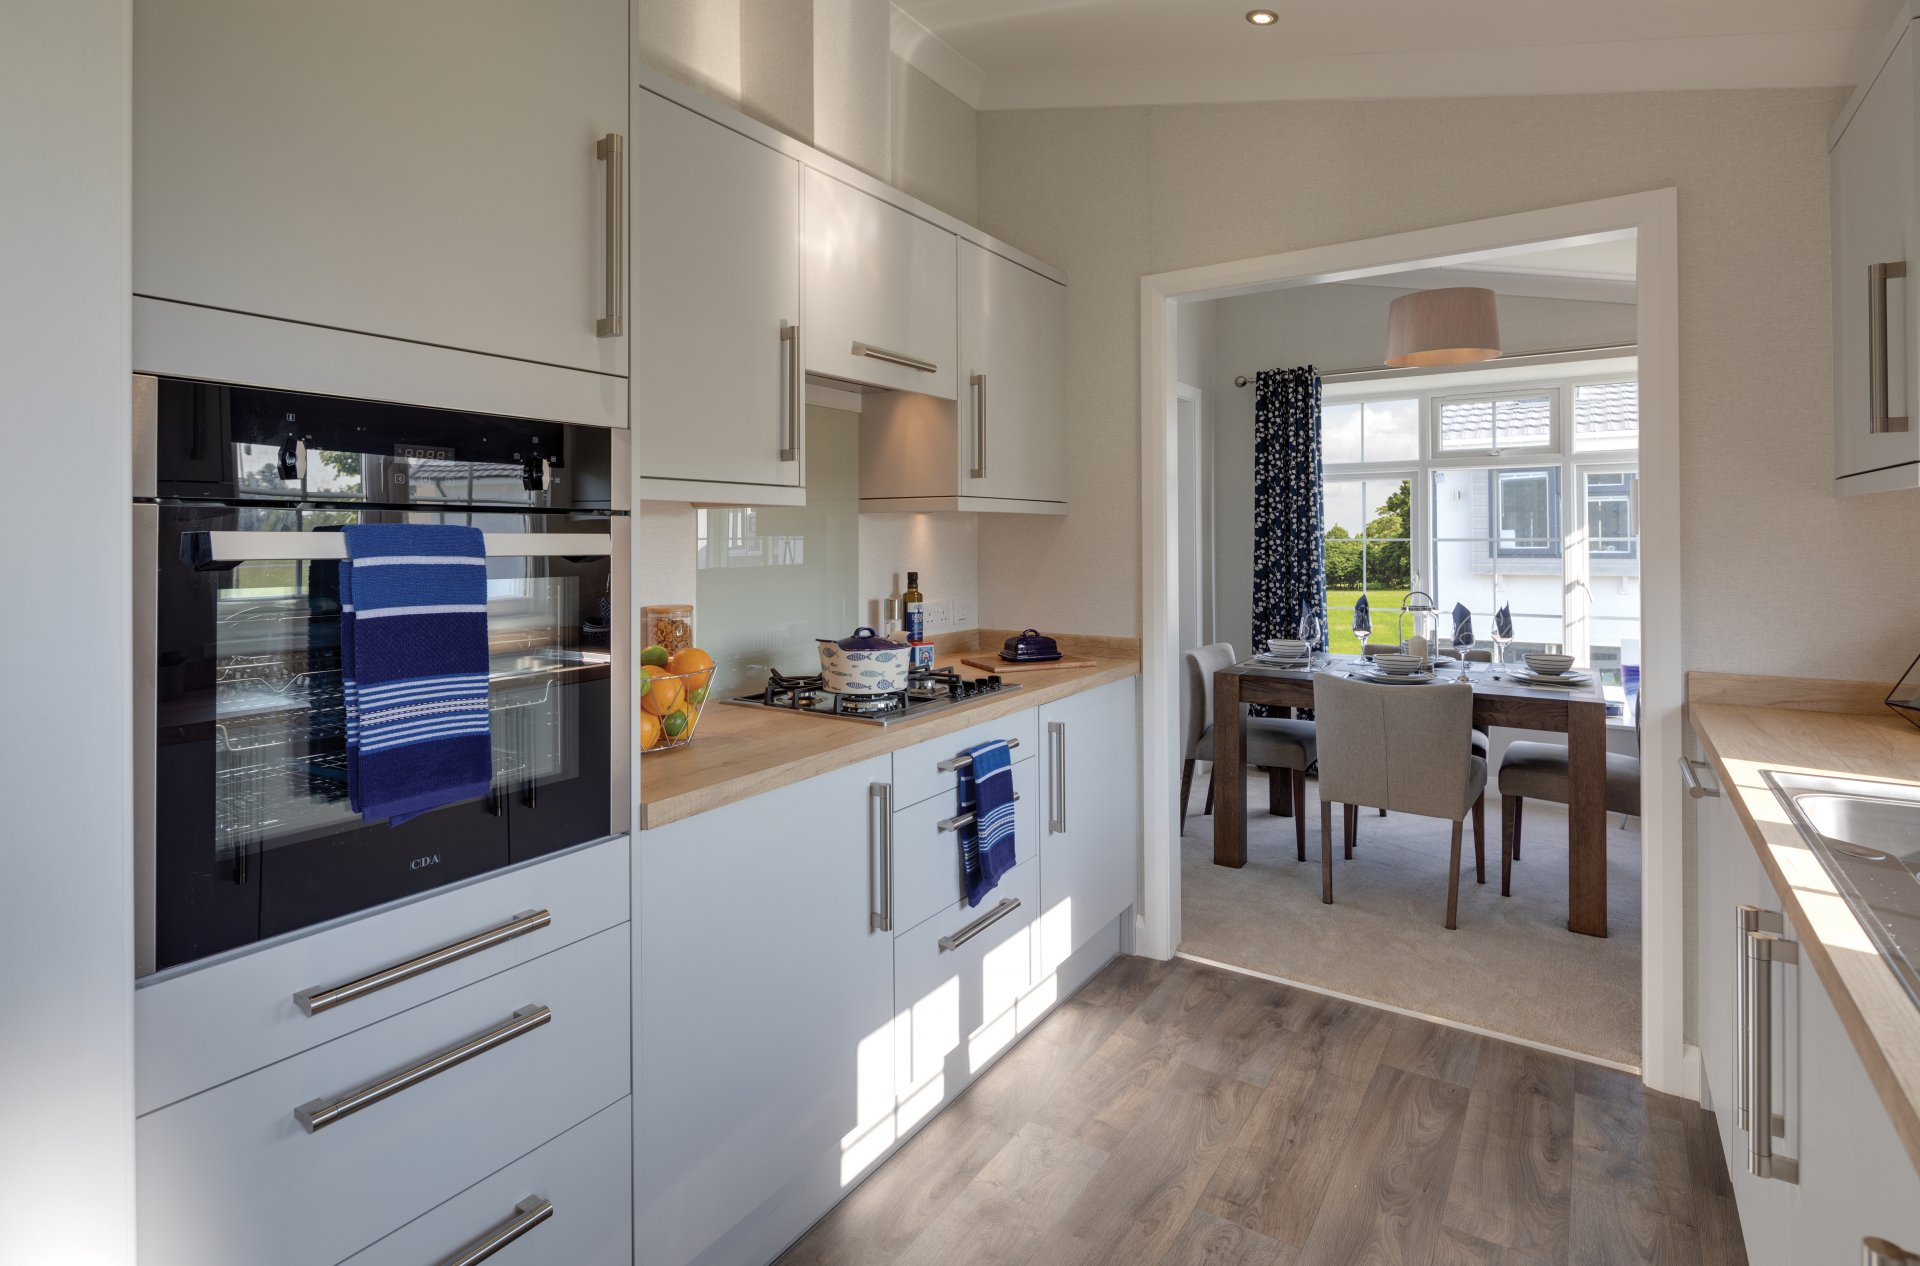 Charnwood kitchen interior.